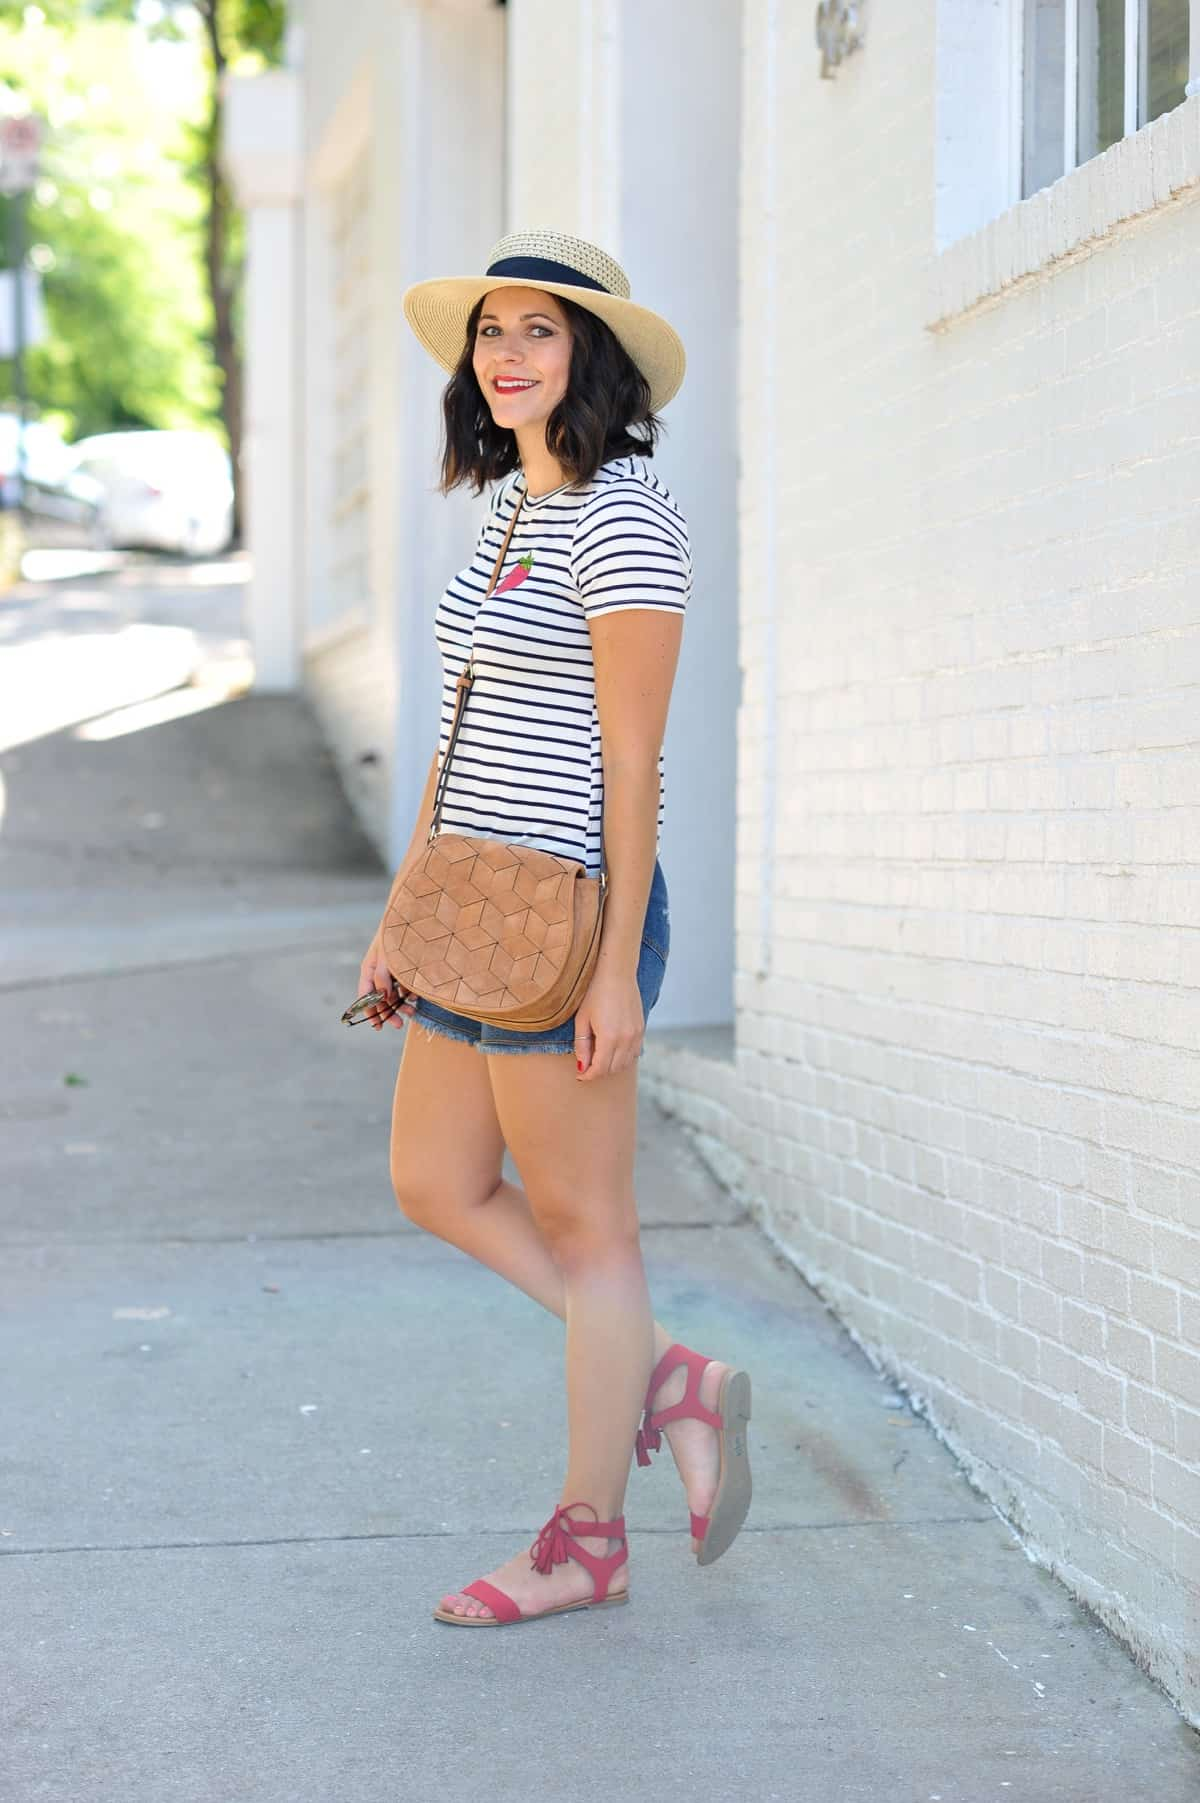 4th of july outfit ideas, striped tee outfits - @mystylevita - 16